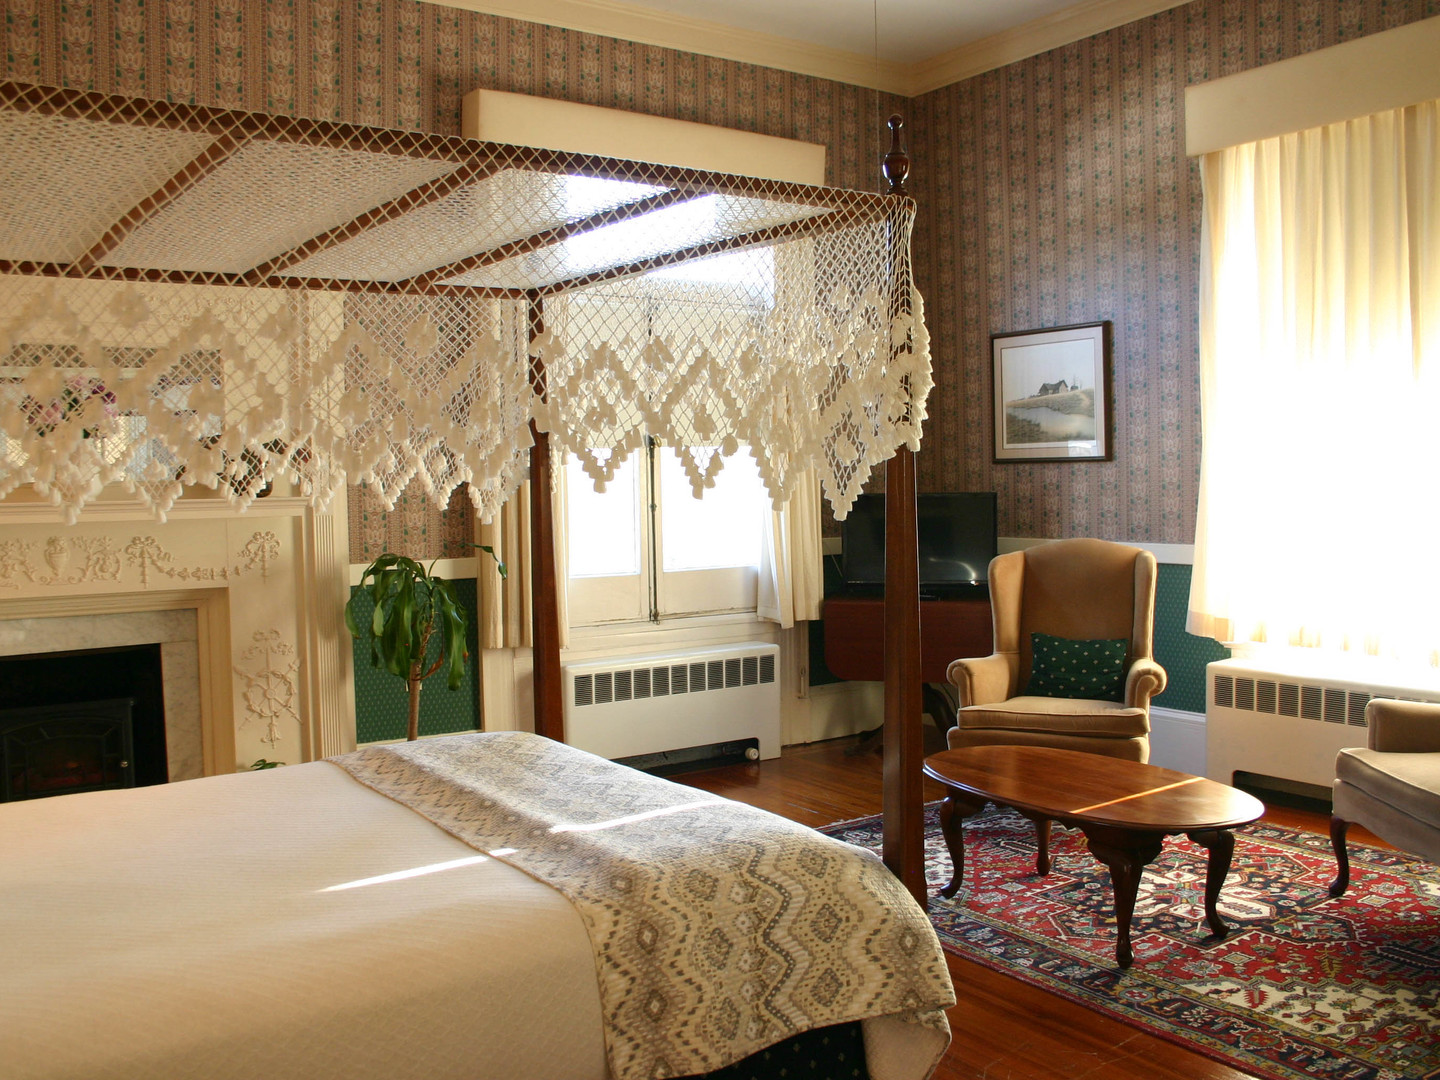 A hotel room with a bed and a fireplace at Wayside Guest House.